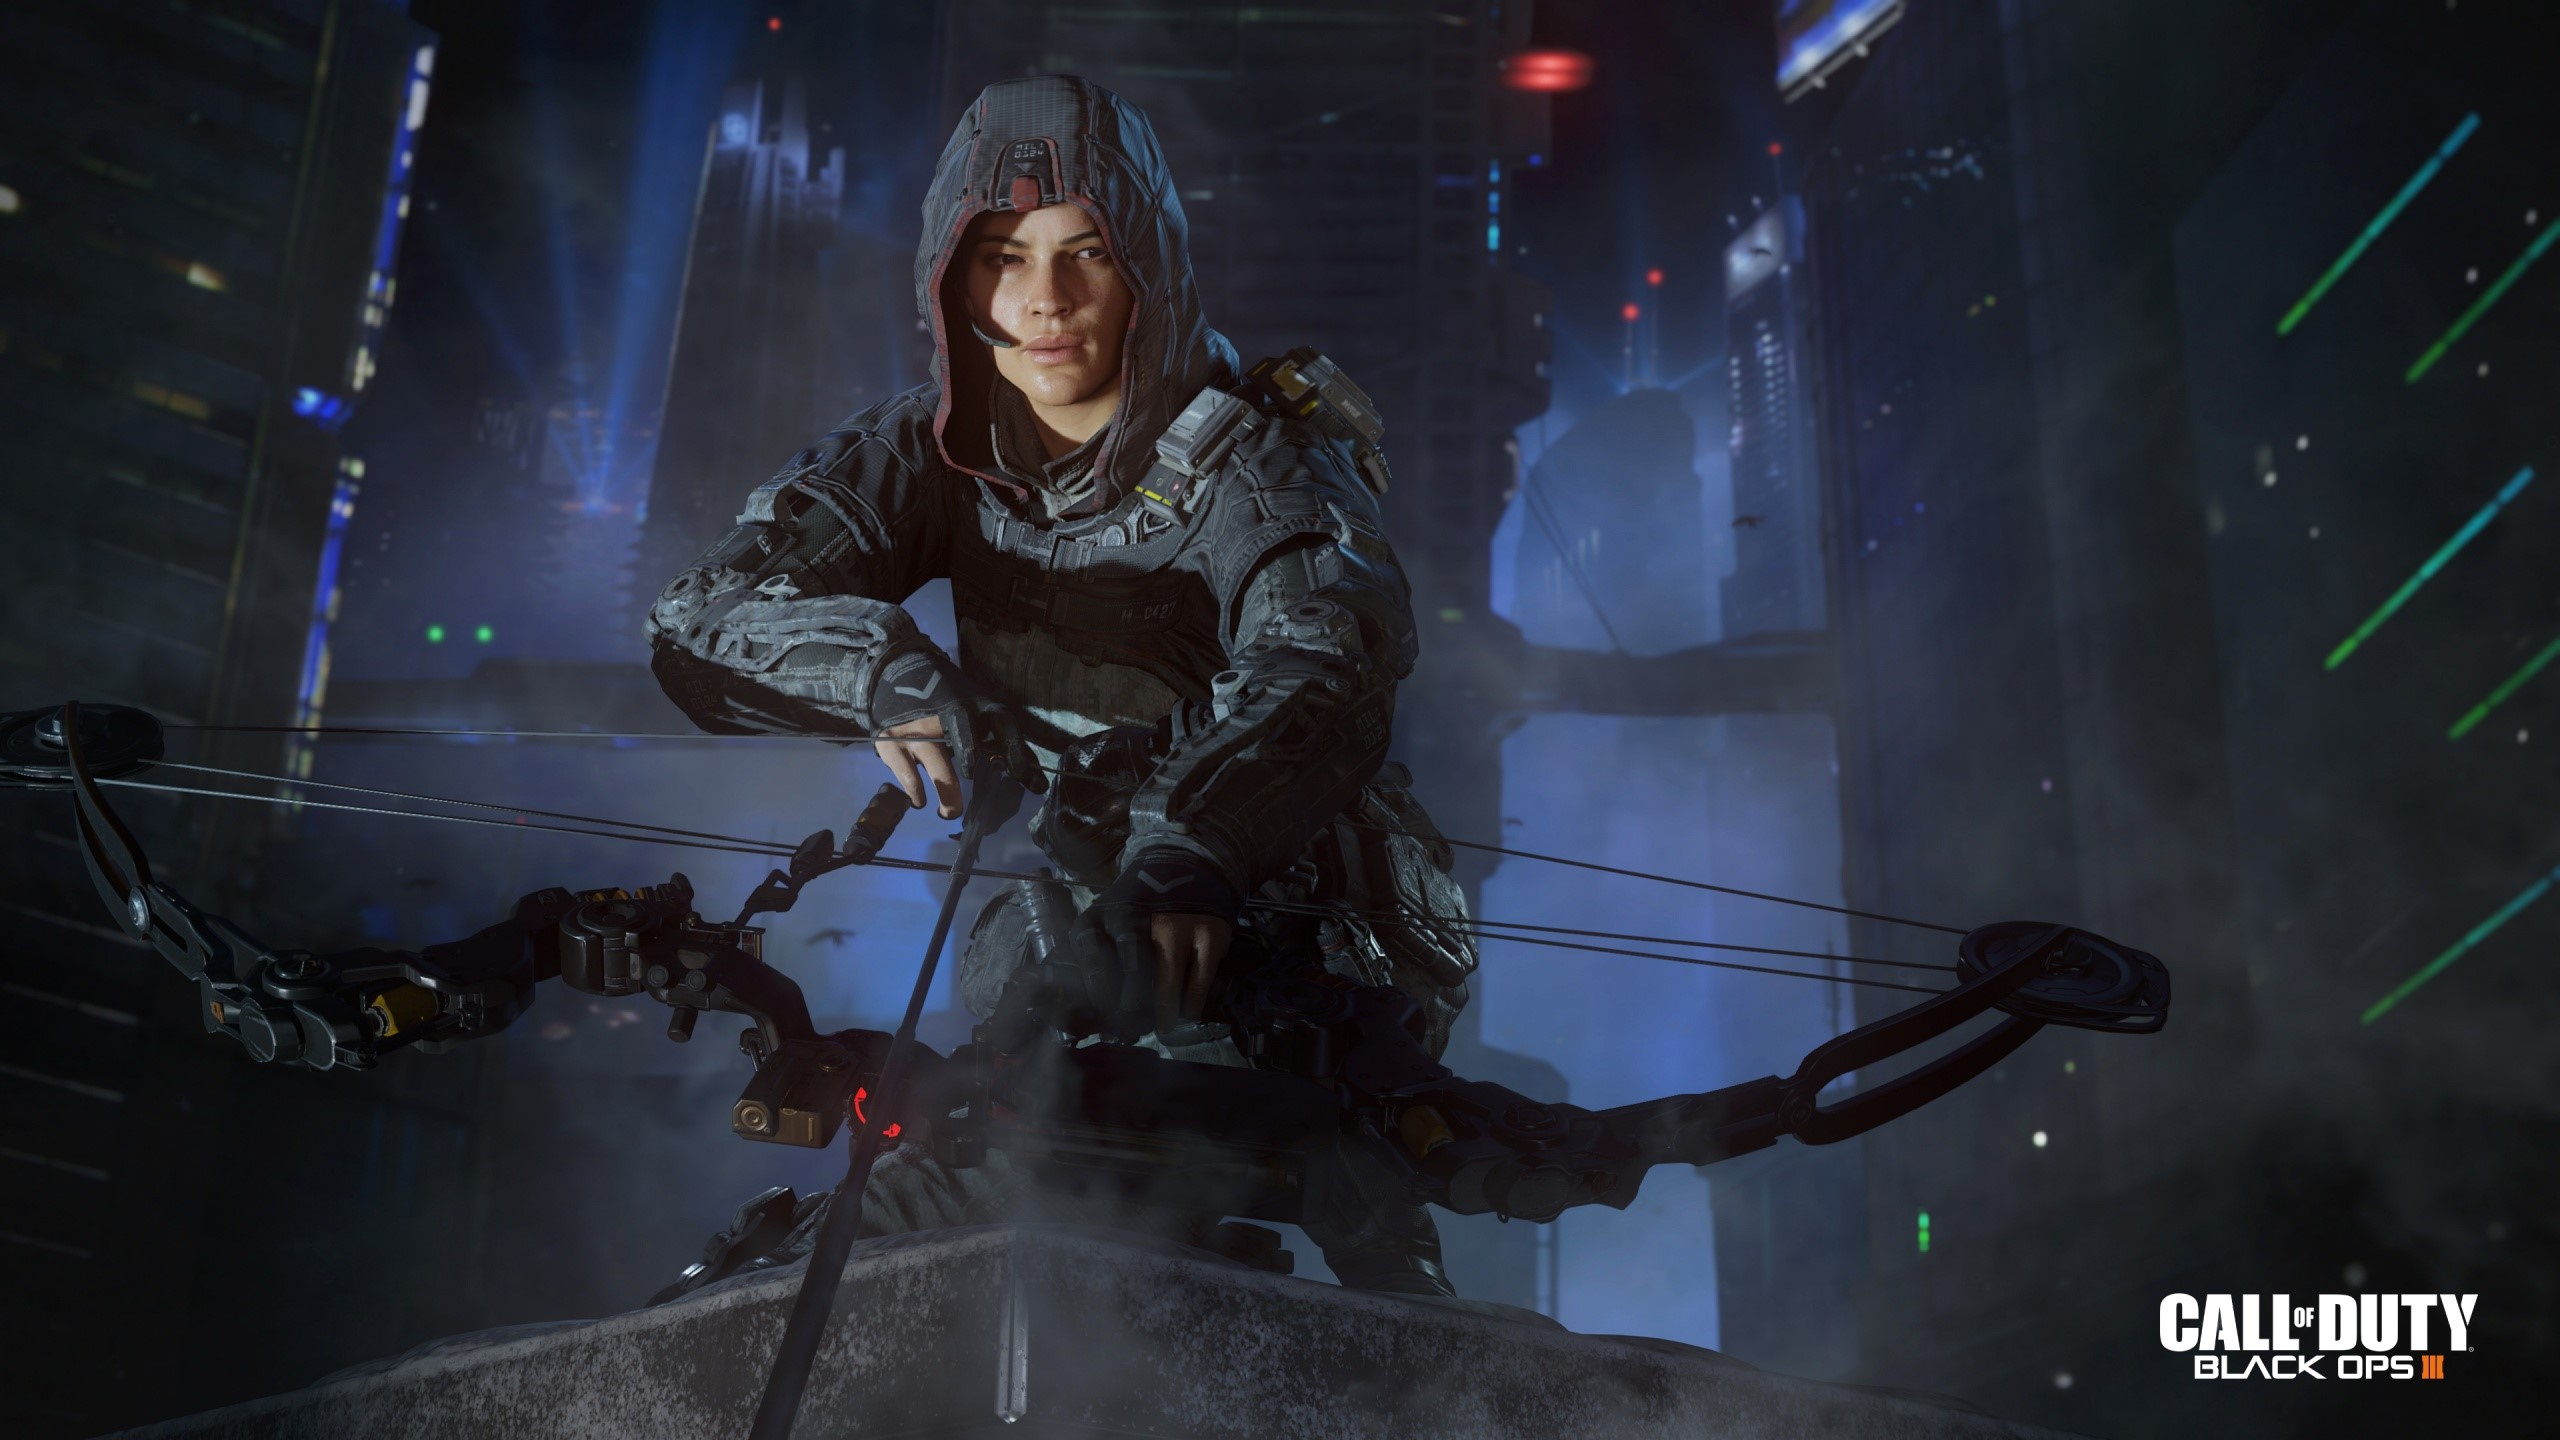 Wallpaper Specialist Outrider from Call of duty Black Ops 3